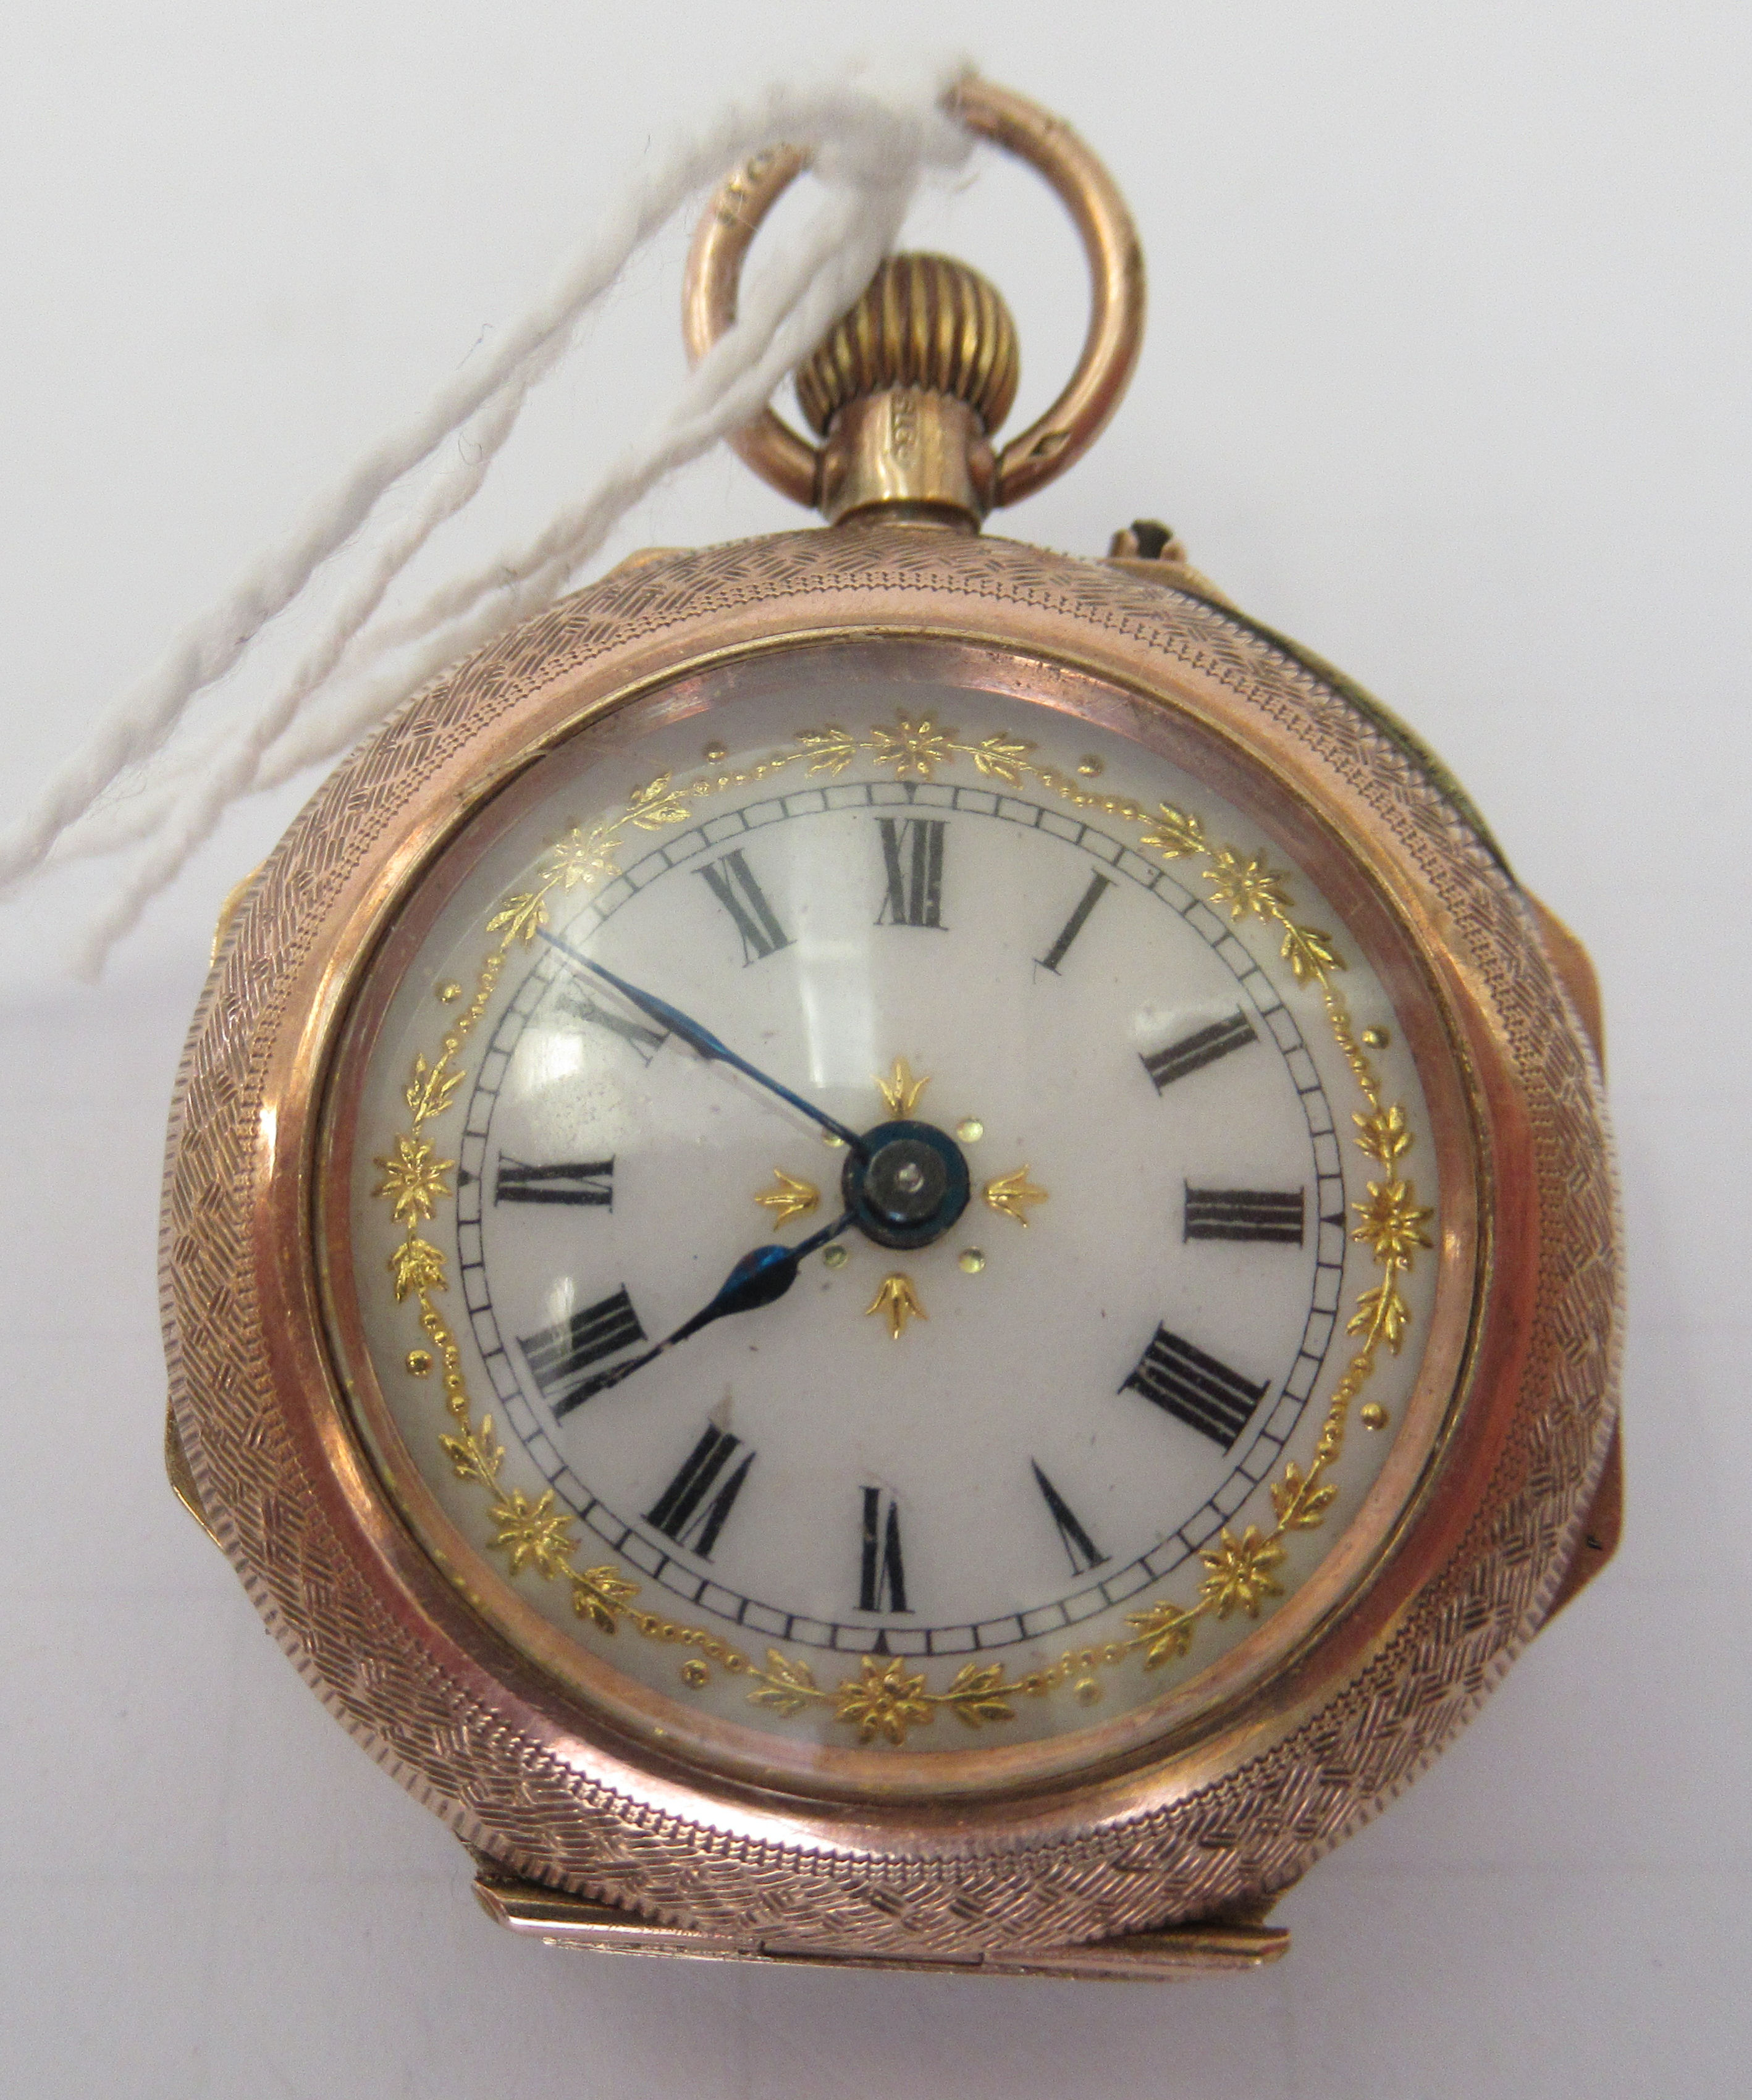 A 9ct gold cased fob watch with engraved and enamelled green ornament, the keyless movement faced by